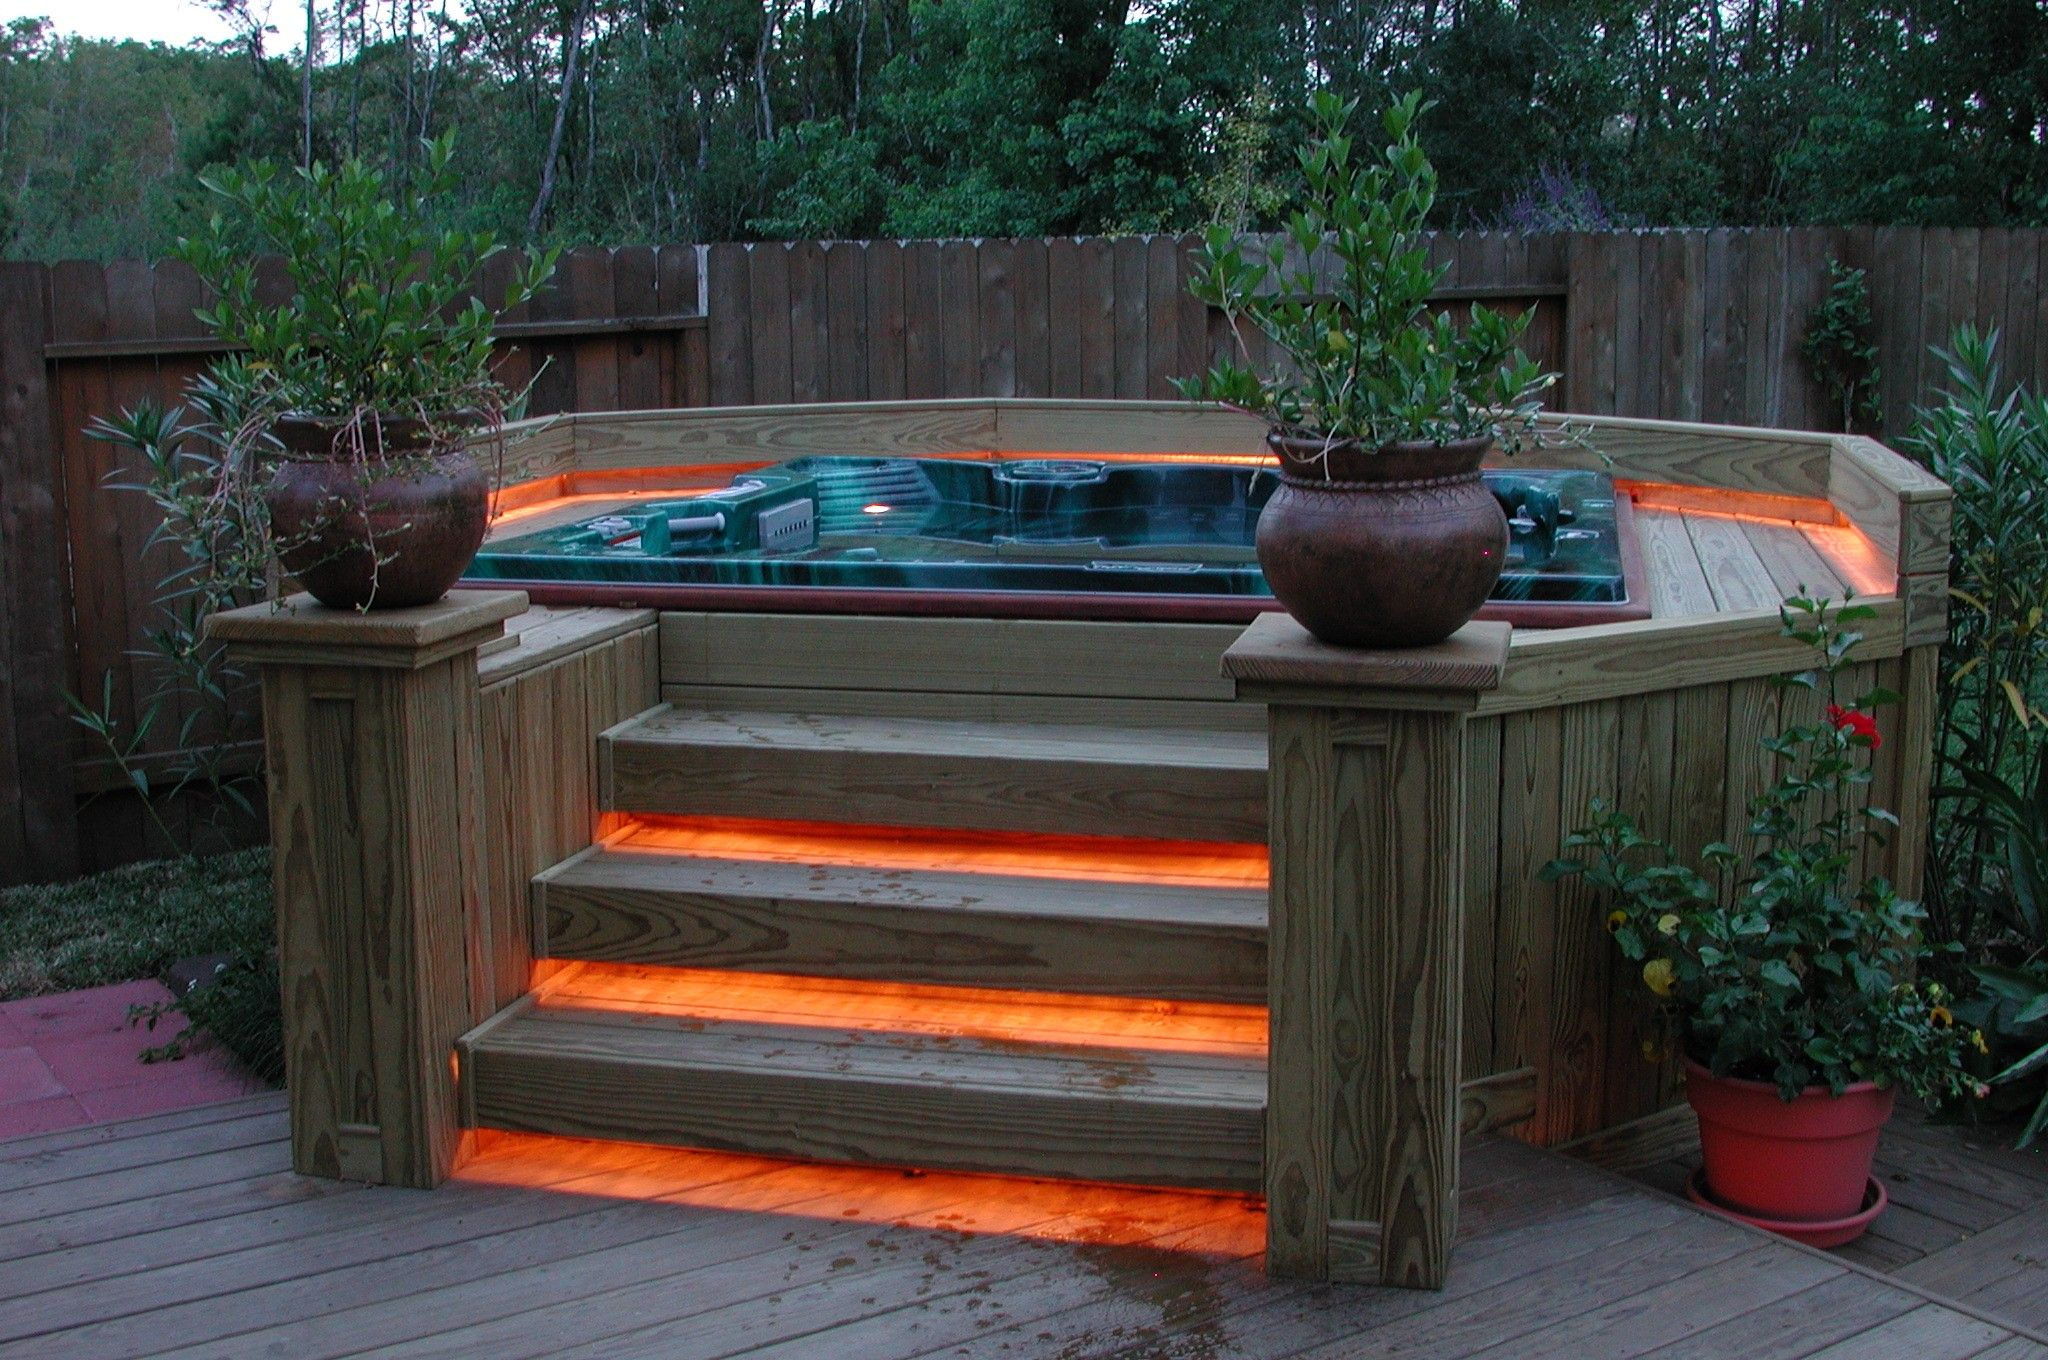 47 Irresistible hot tub spa designs for your backyard  Dive Right In  Hot tub backyard Hot